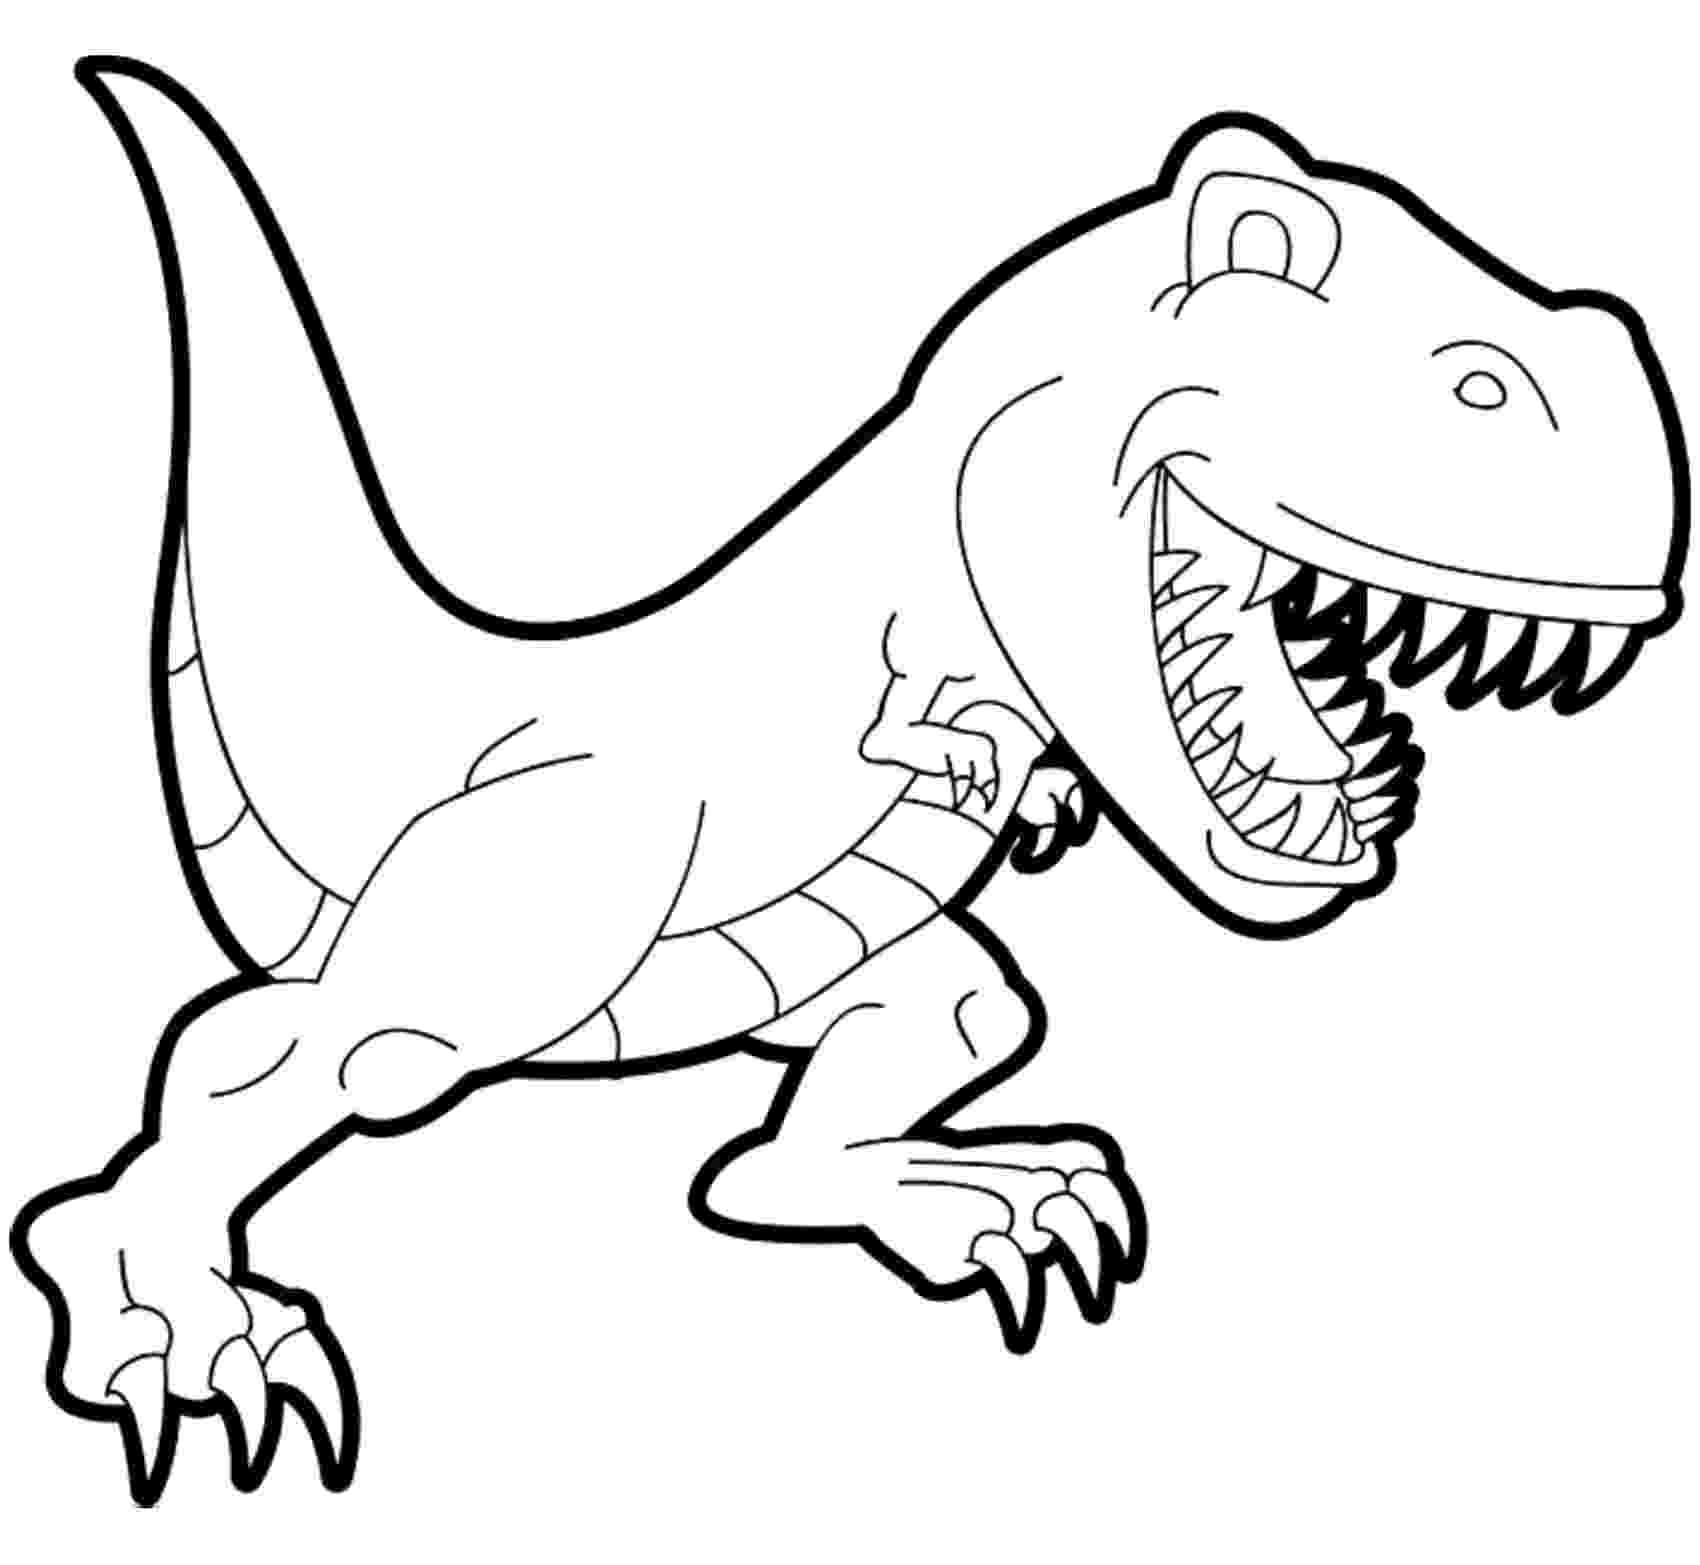 dinosaur coloring pages for toddlers pin by angela albers on drawn and colored dinosaur pages for coloring dinosaur toddlers